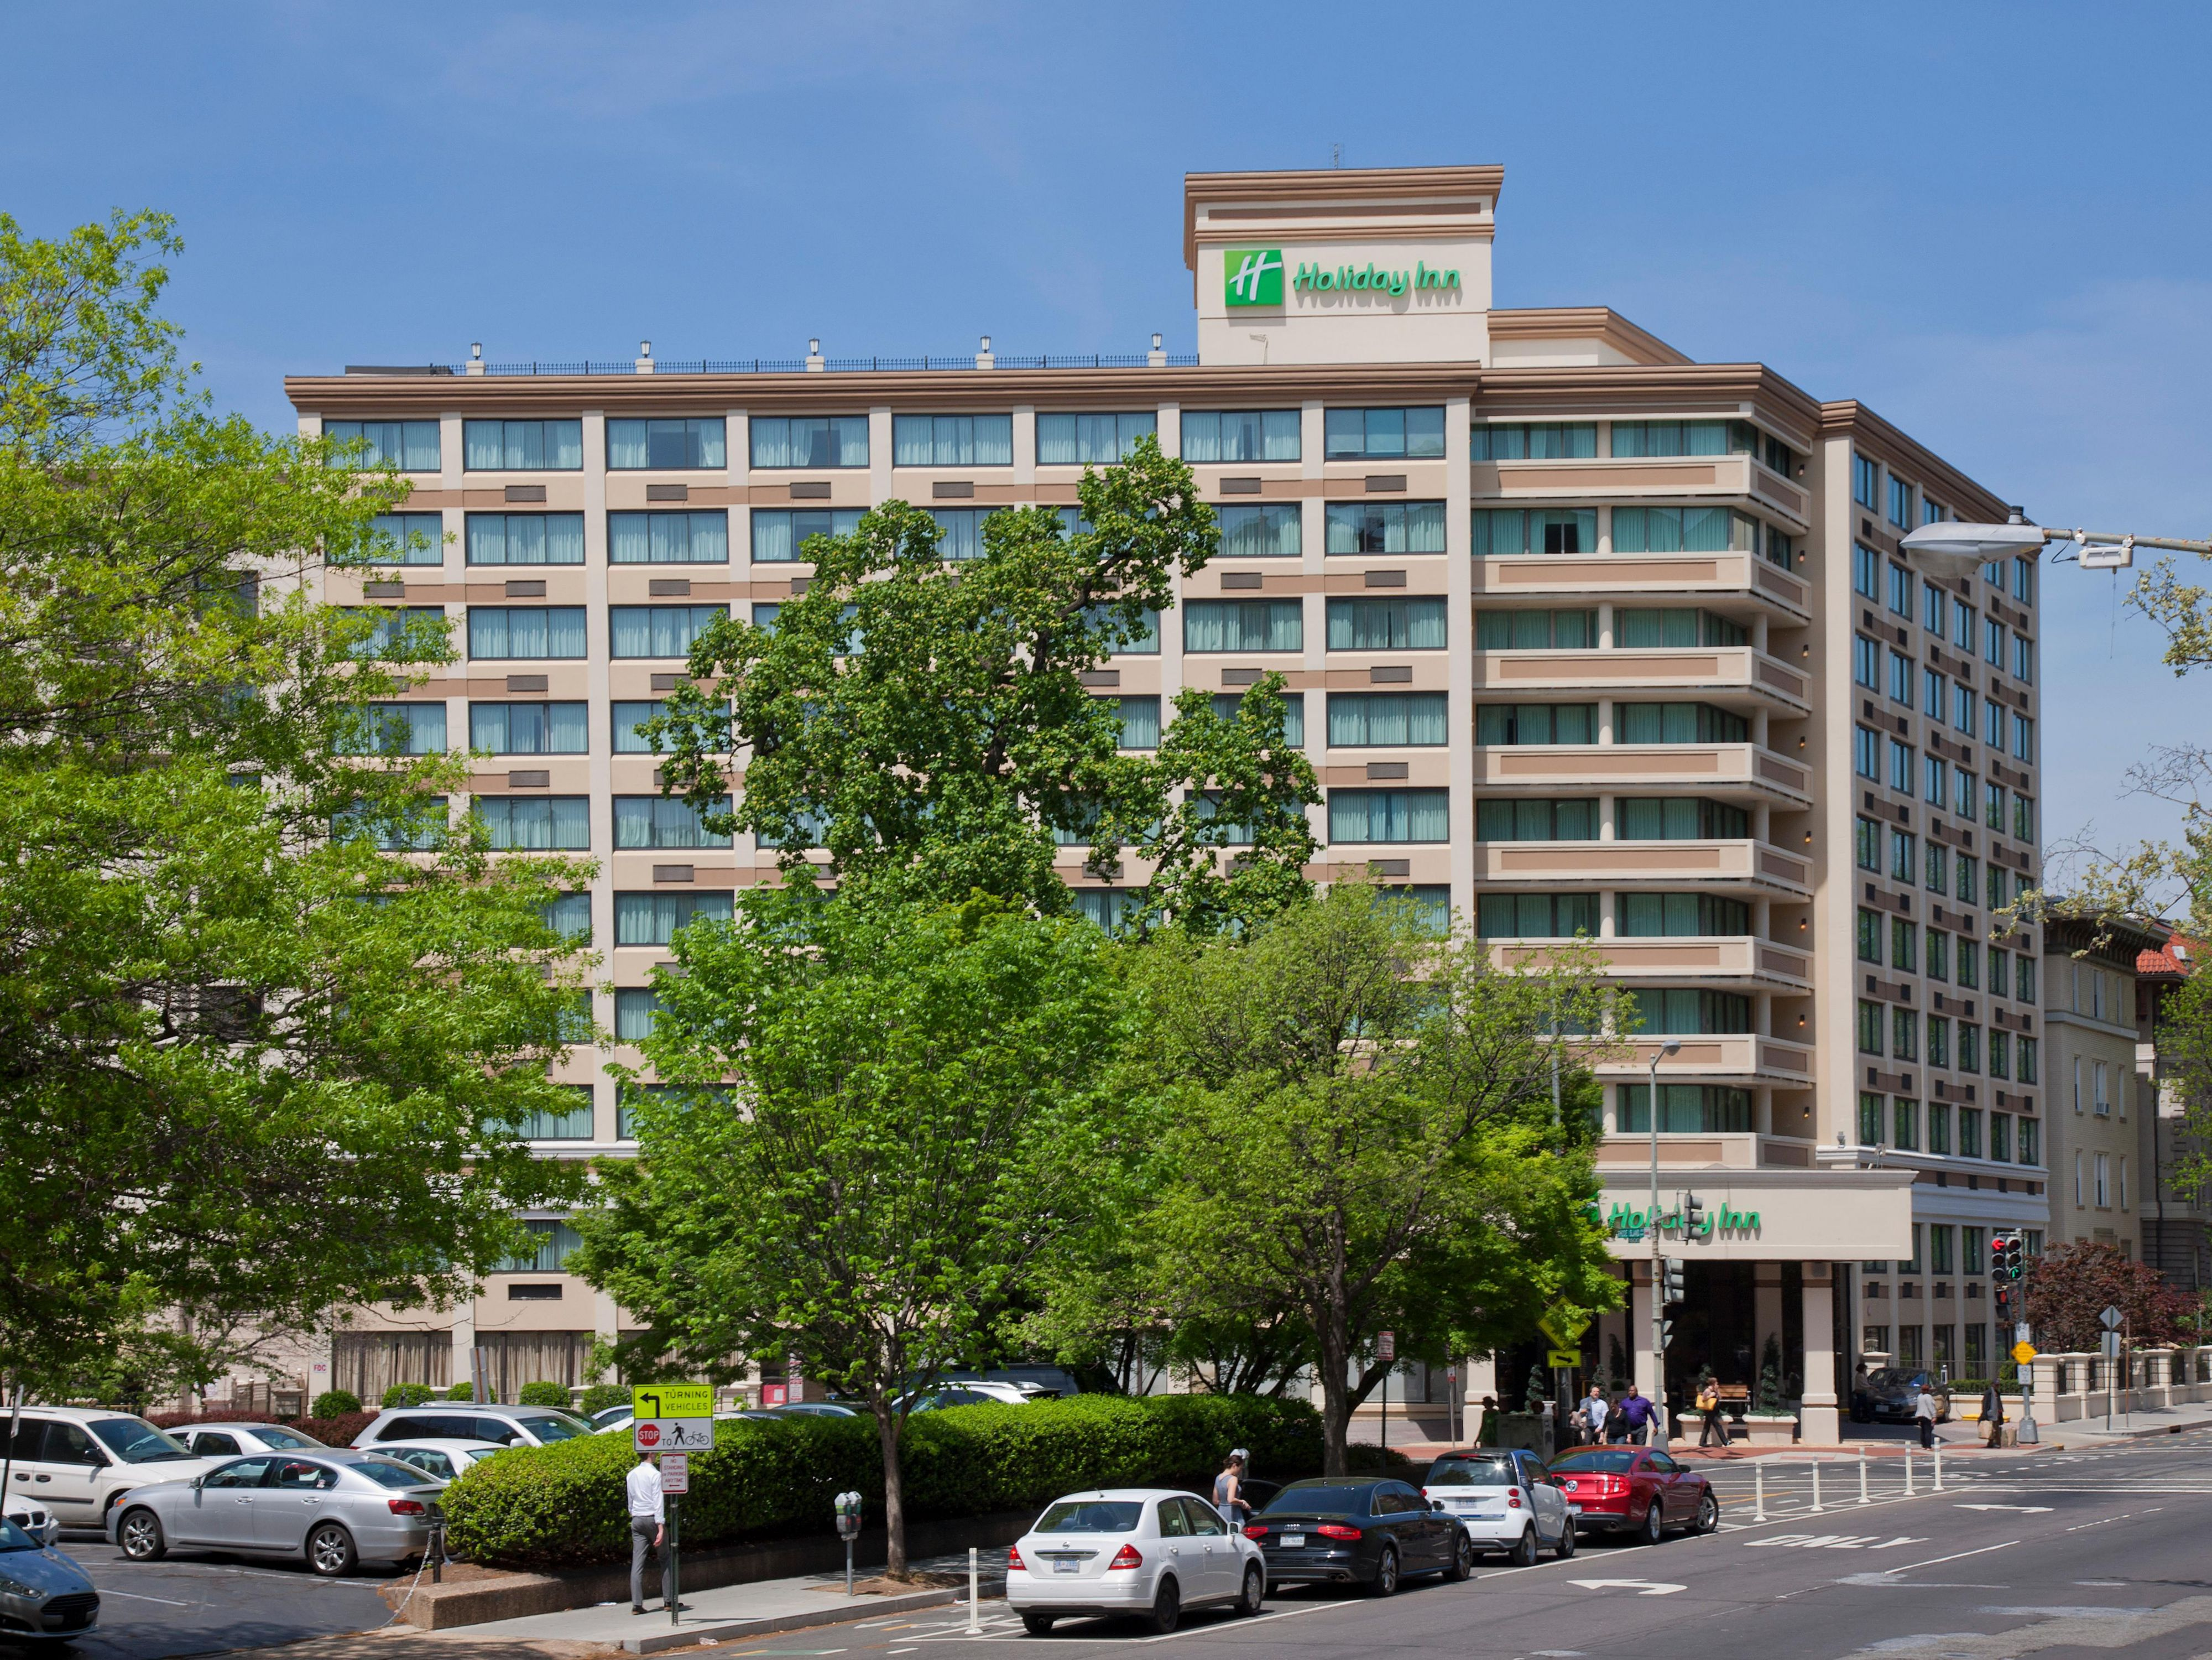 Massachusetts Avenue, NW Hotel Exterior shot